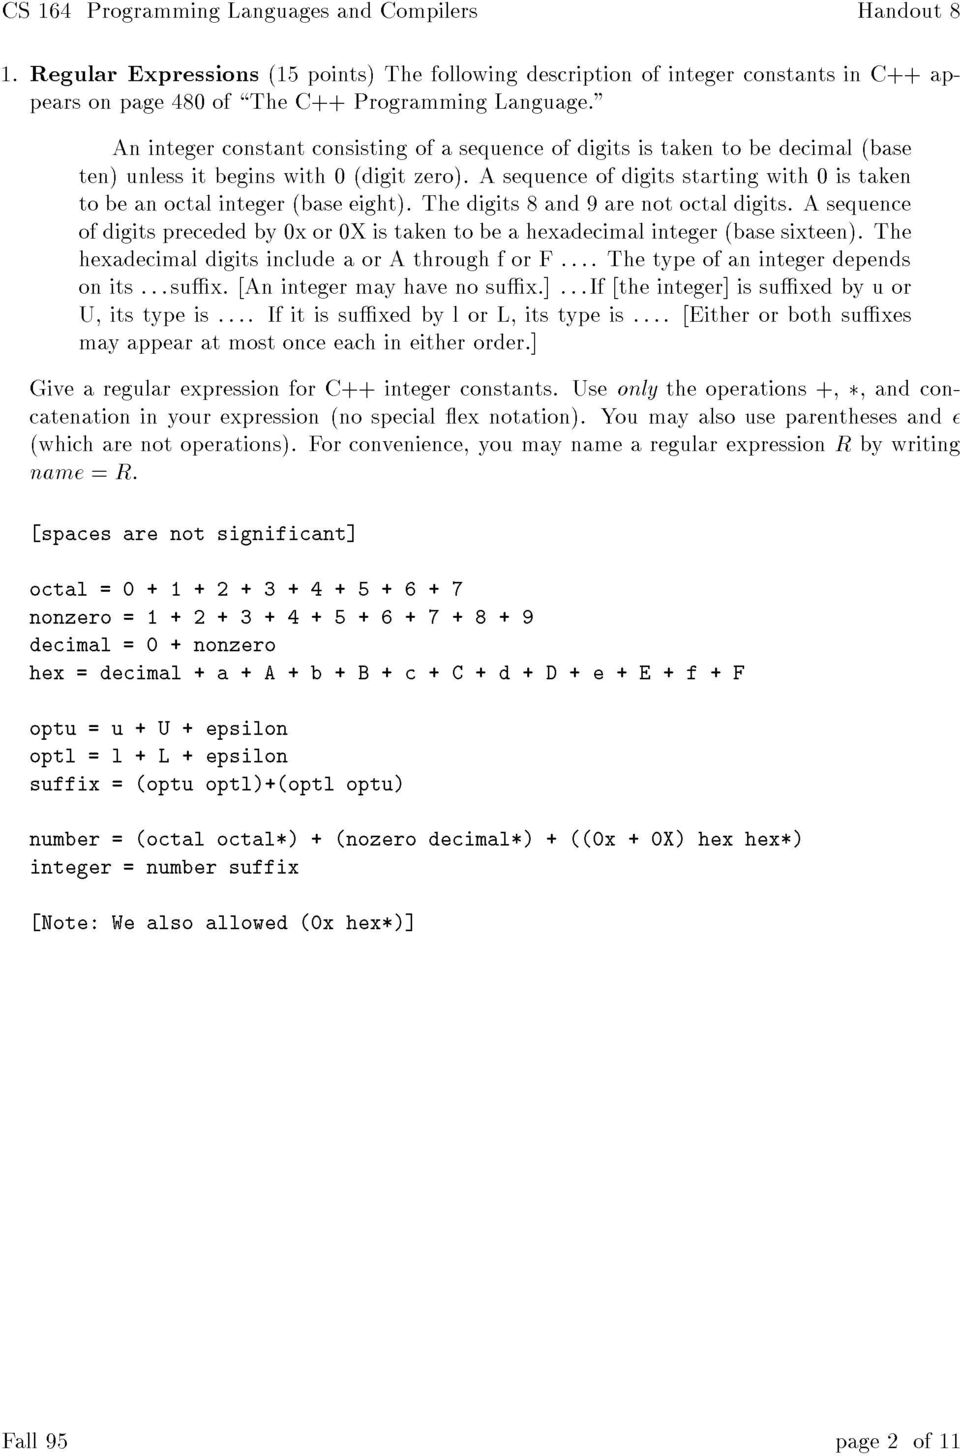 A sequence of digits starting with 0 is taken to be an octal integer (base eight). The digits 8 and 9 are not octal digits.